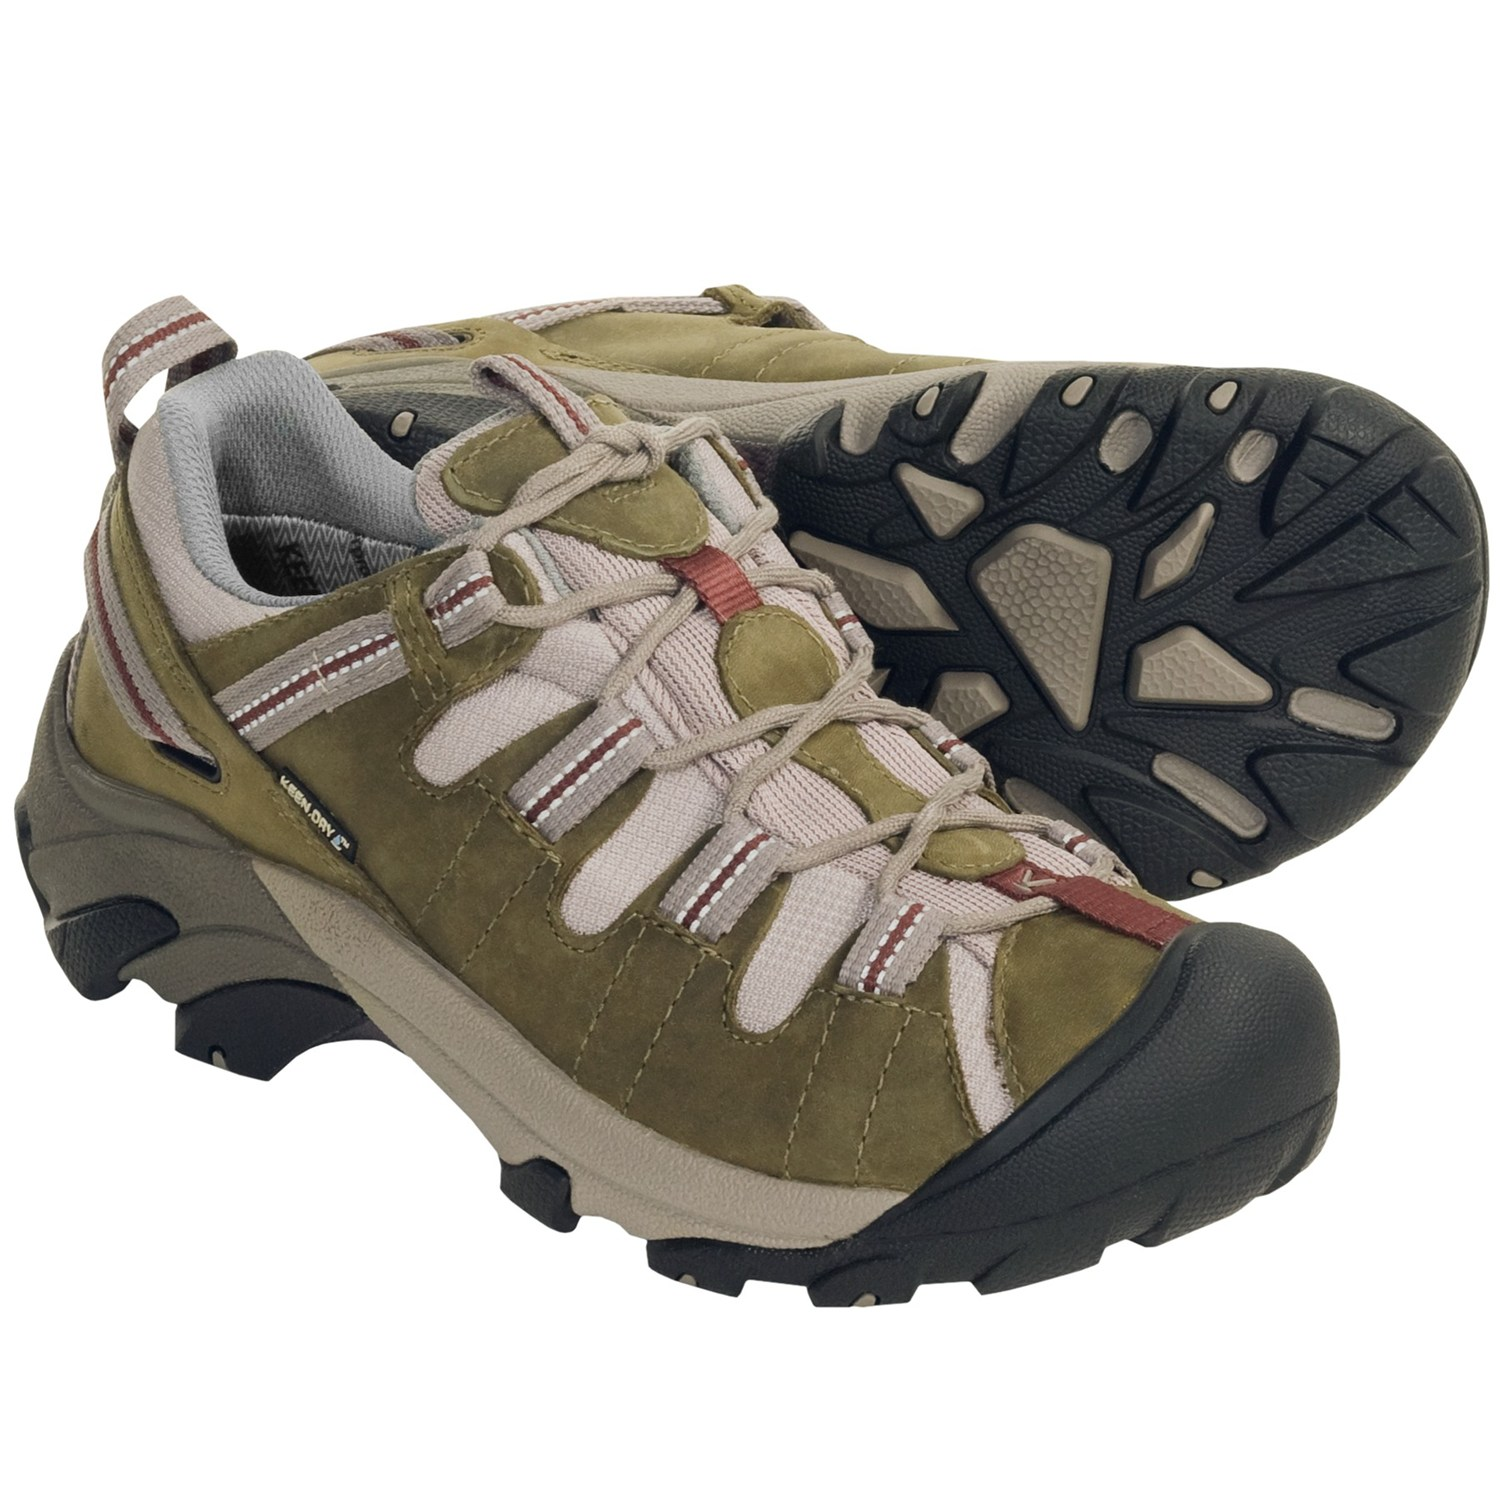 Spring and summer men's gauze breathable comfortable single shoes slip-resistant platform outdoor hiking shoes walking shoes